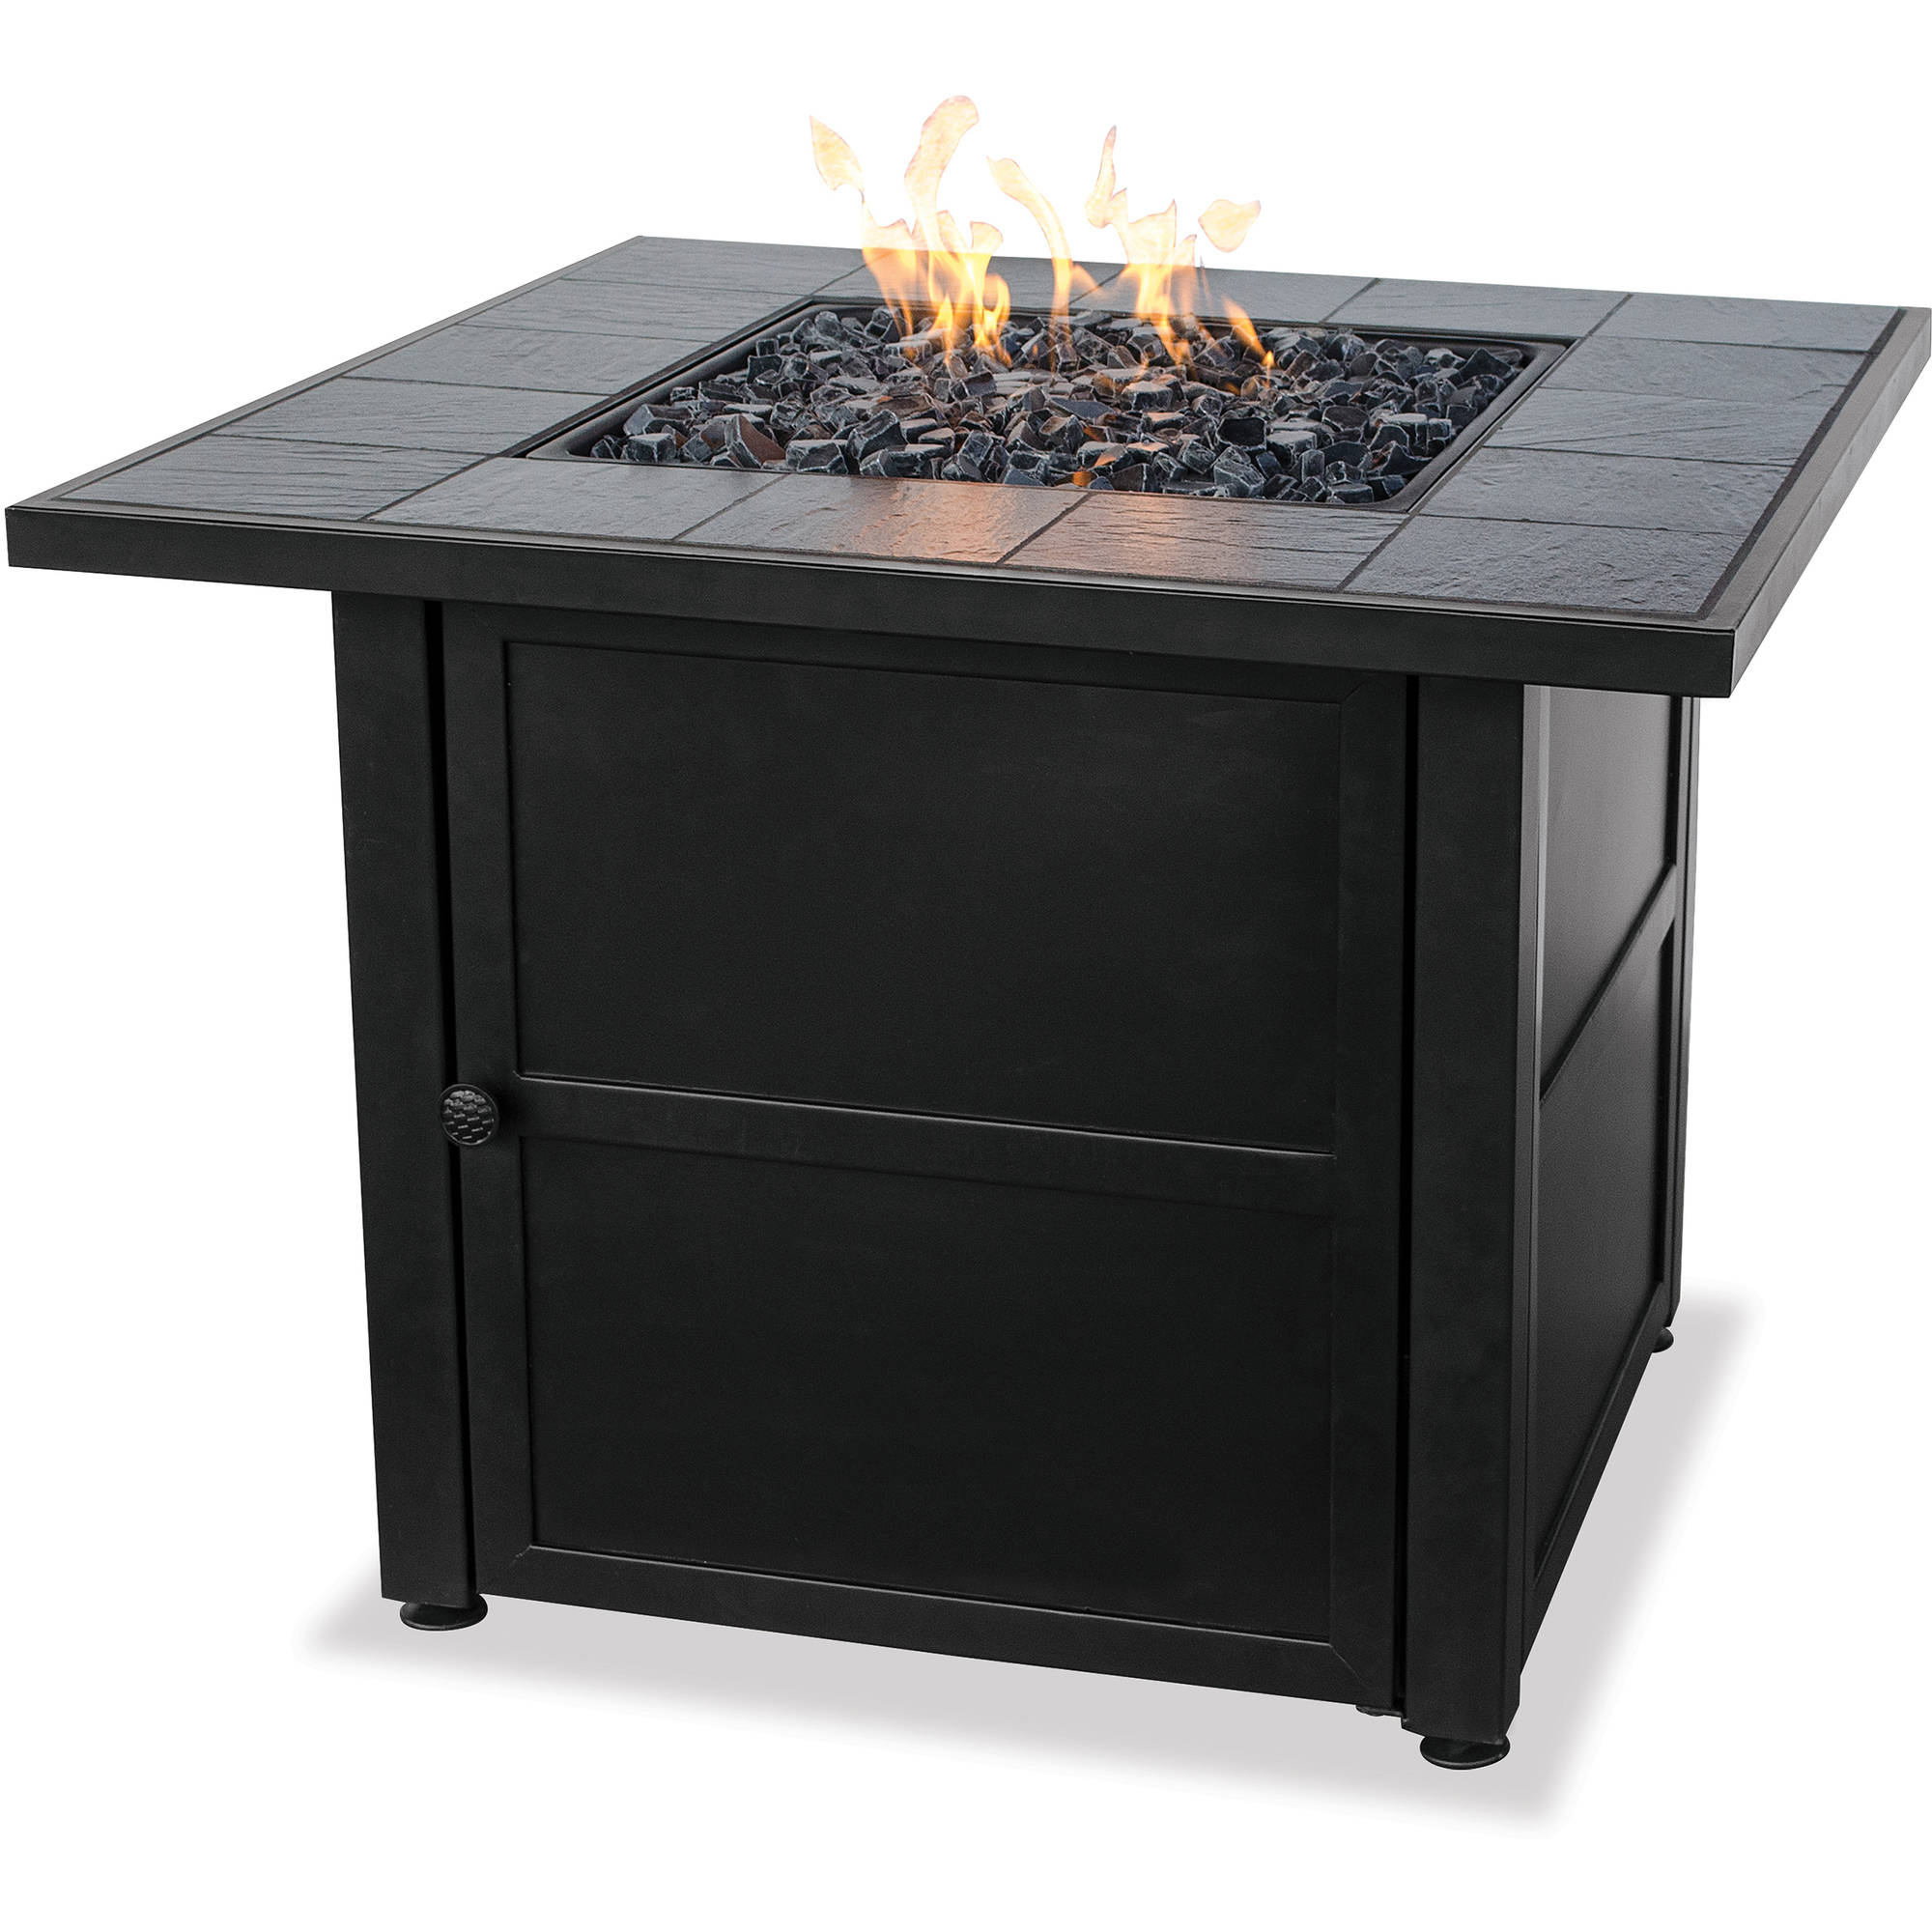 UniFlame LP Gas Ceramic Tile Fire Pit Table Walmart